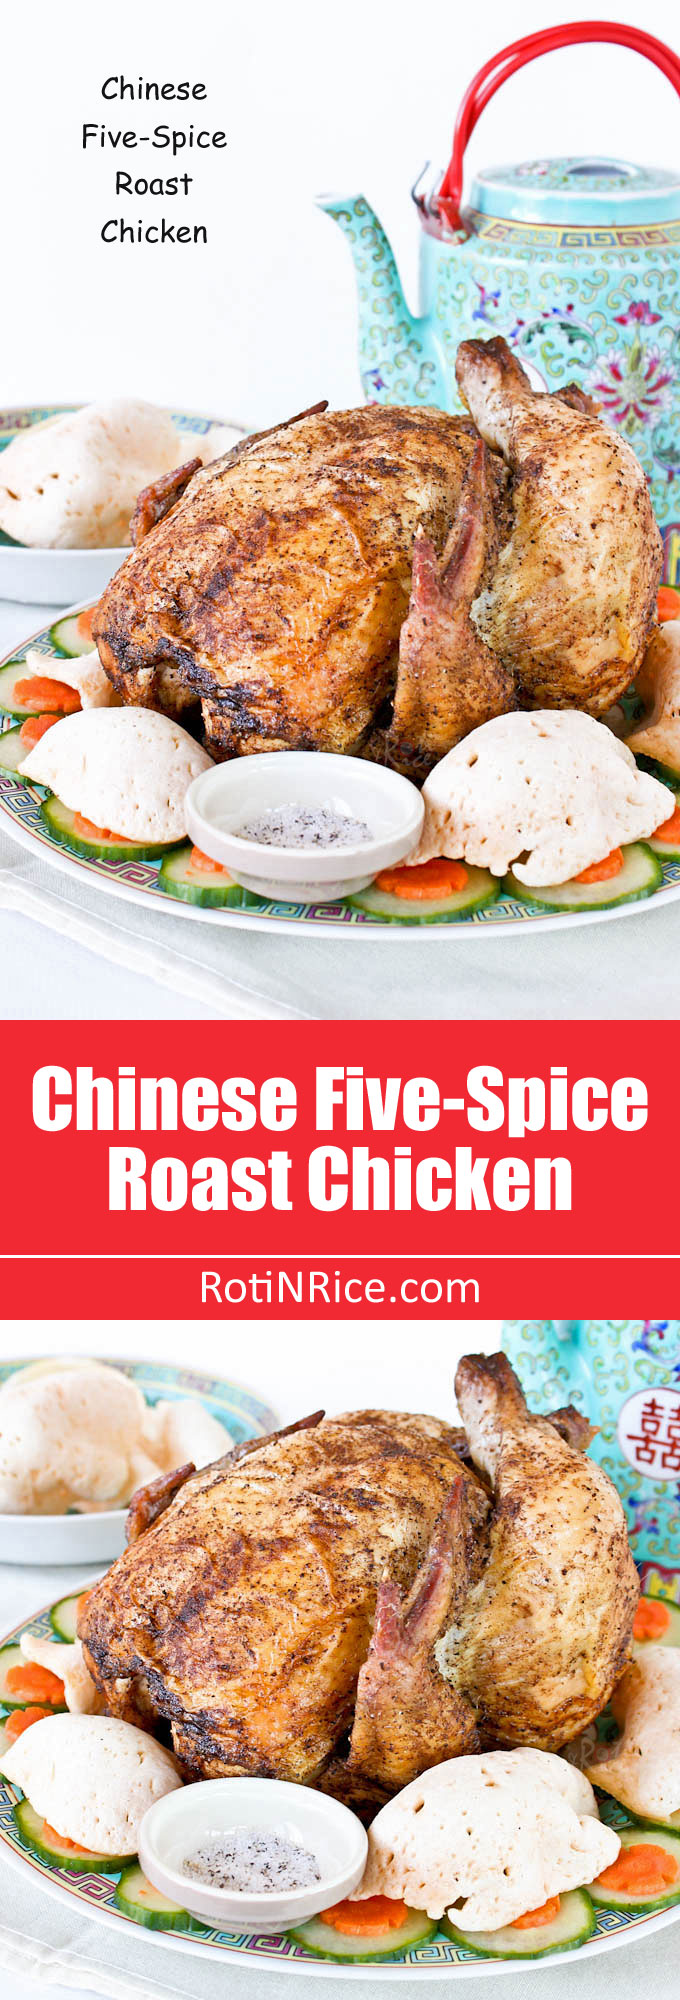 Fragrant crispy skin Chinese Five-Spice Roast Chicken served with pepper salt. Perfect for the Chinese New Year Reunion Dinner or a weekend dinner. | RotiNRice.com